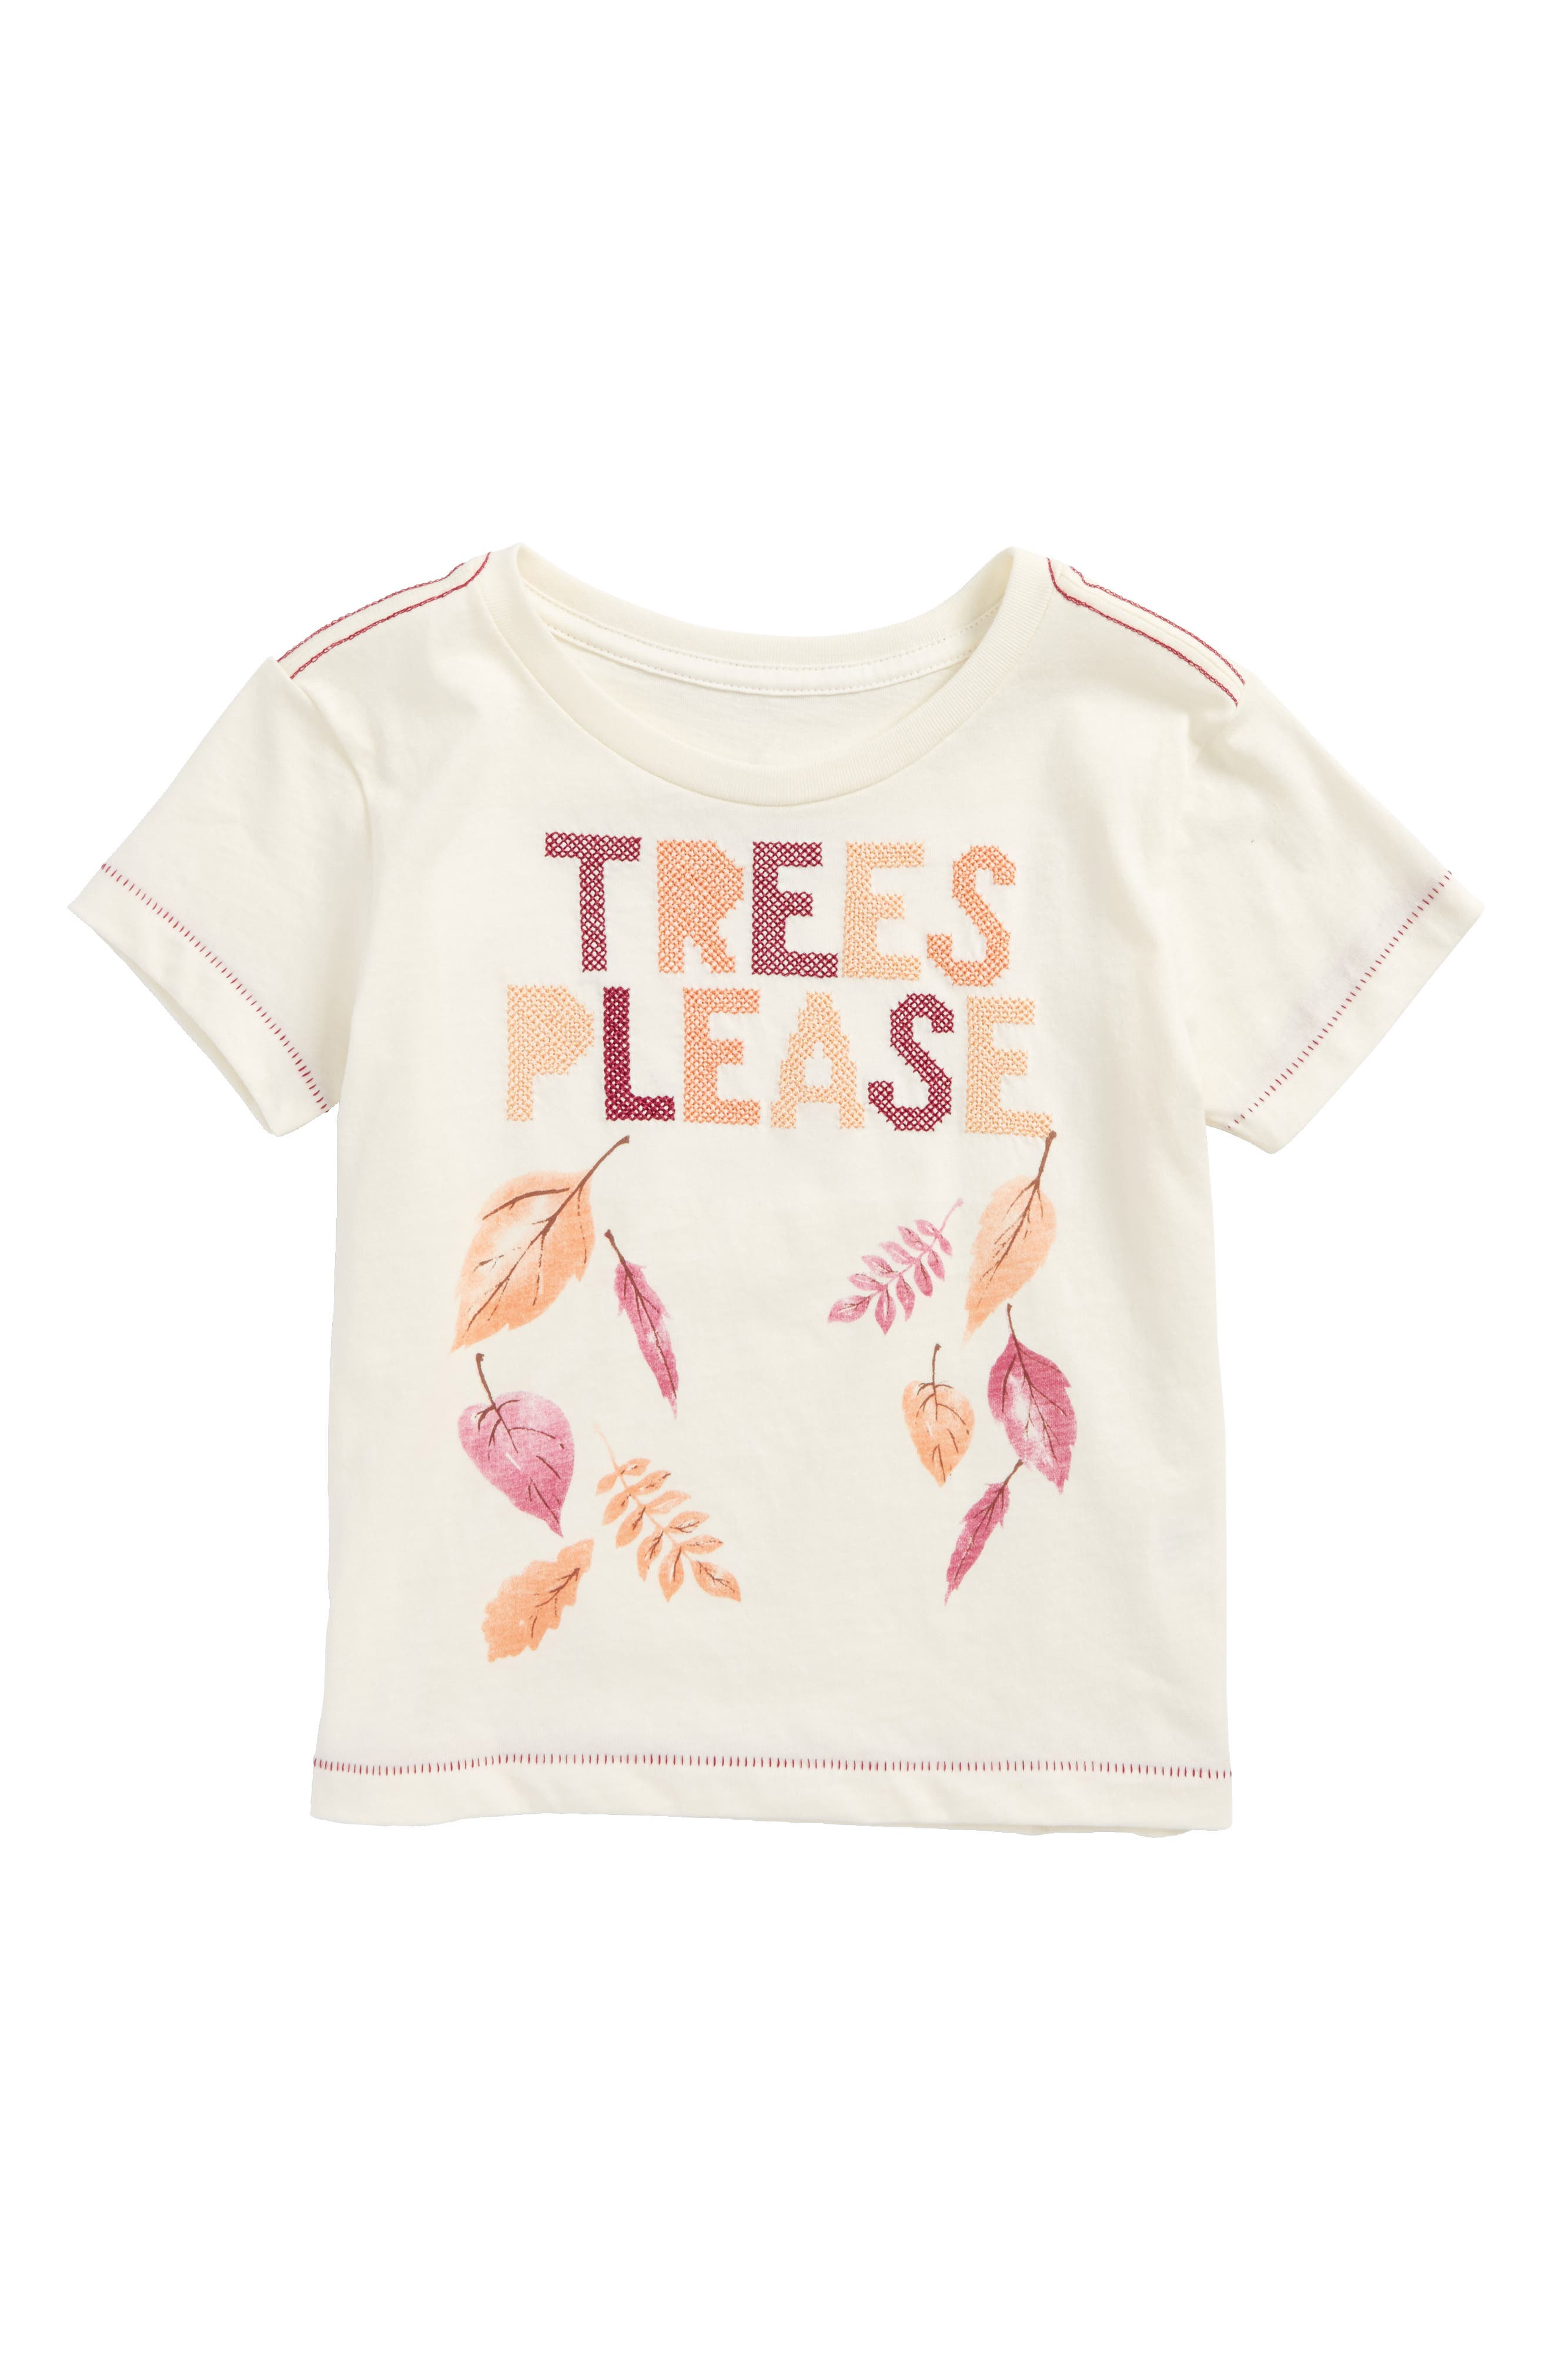 Trees Please Embroidered Graphic Tee,                             Main thumbnail 1, color,                             906